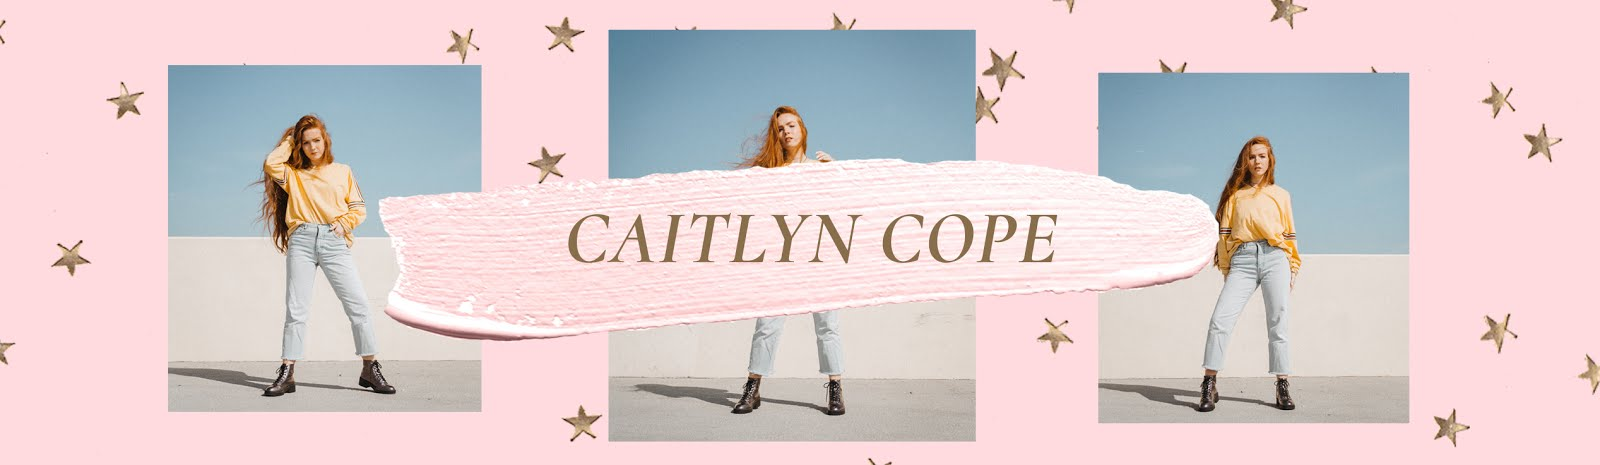 Caitlyn Cope